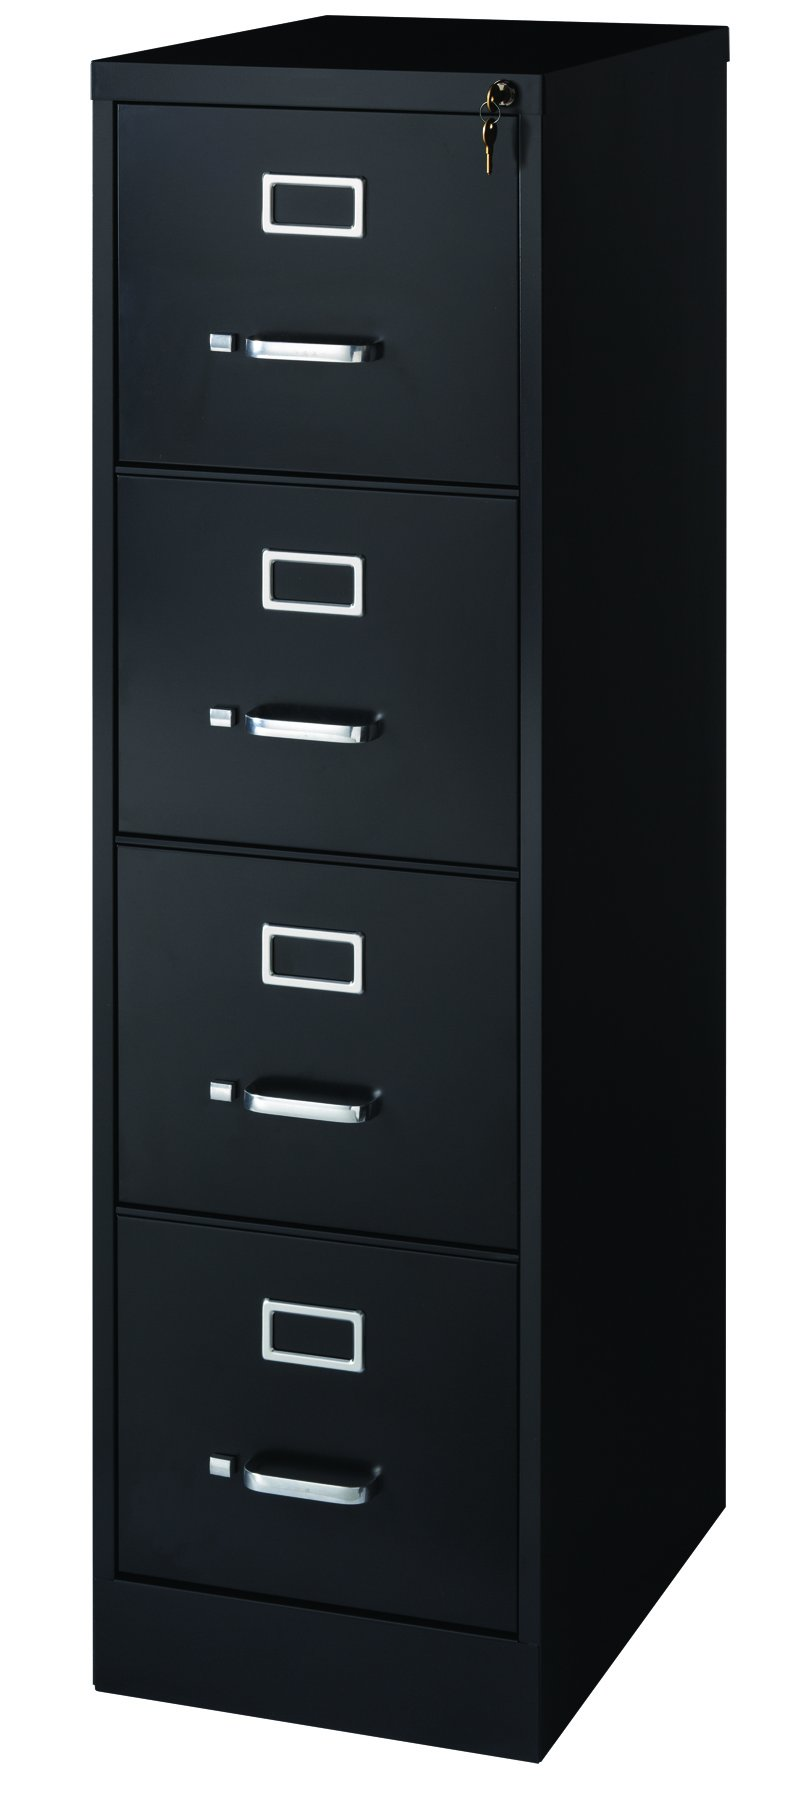 Office Dimensions Commercial 4 Drawer Letter Width Vertical File Cabinet, 22'' Deep - Black by Office Dimensions